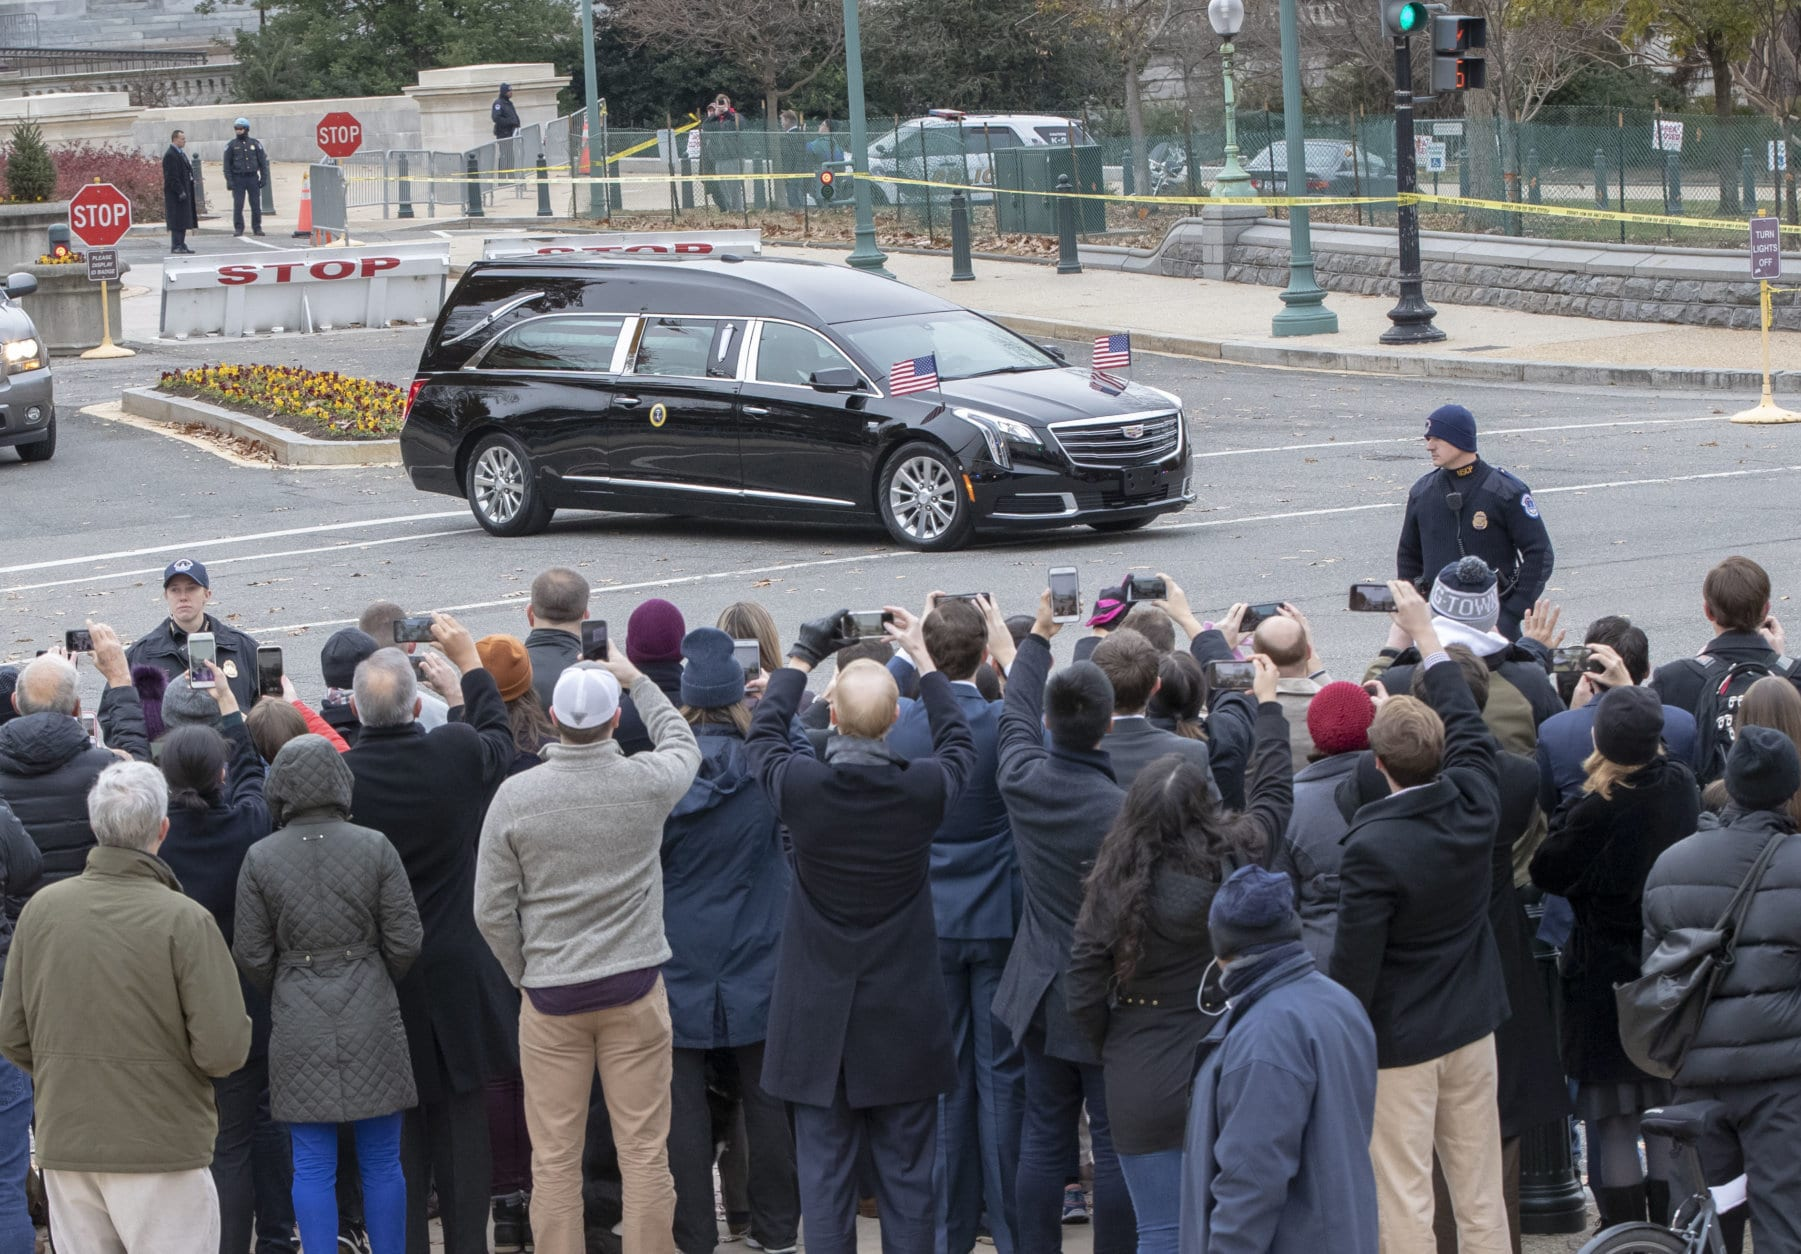 The hearse bearing the casket of former President George H.W. Bush leaves the Capitol on the way to a State Funeral at Washington National Cathedral, Wednesday, Dec. 5, 2018. (AP Photo/J. Scott Applewhite)